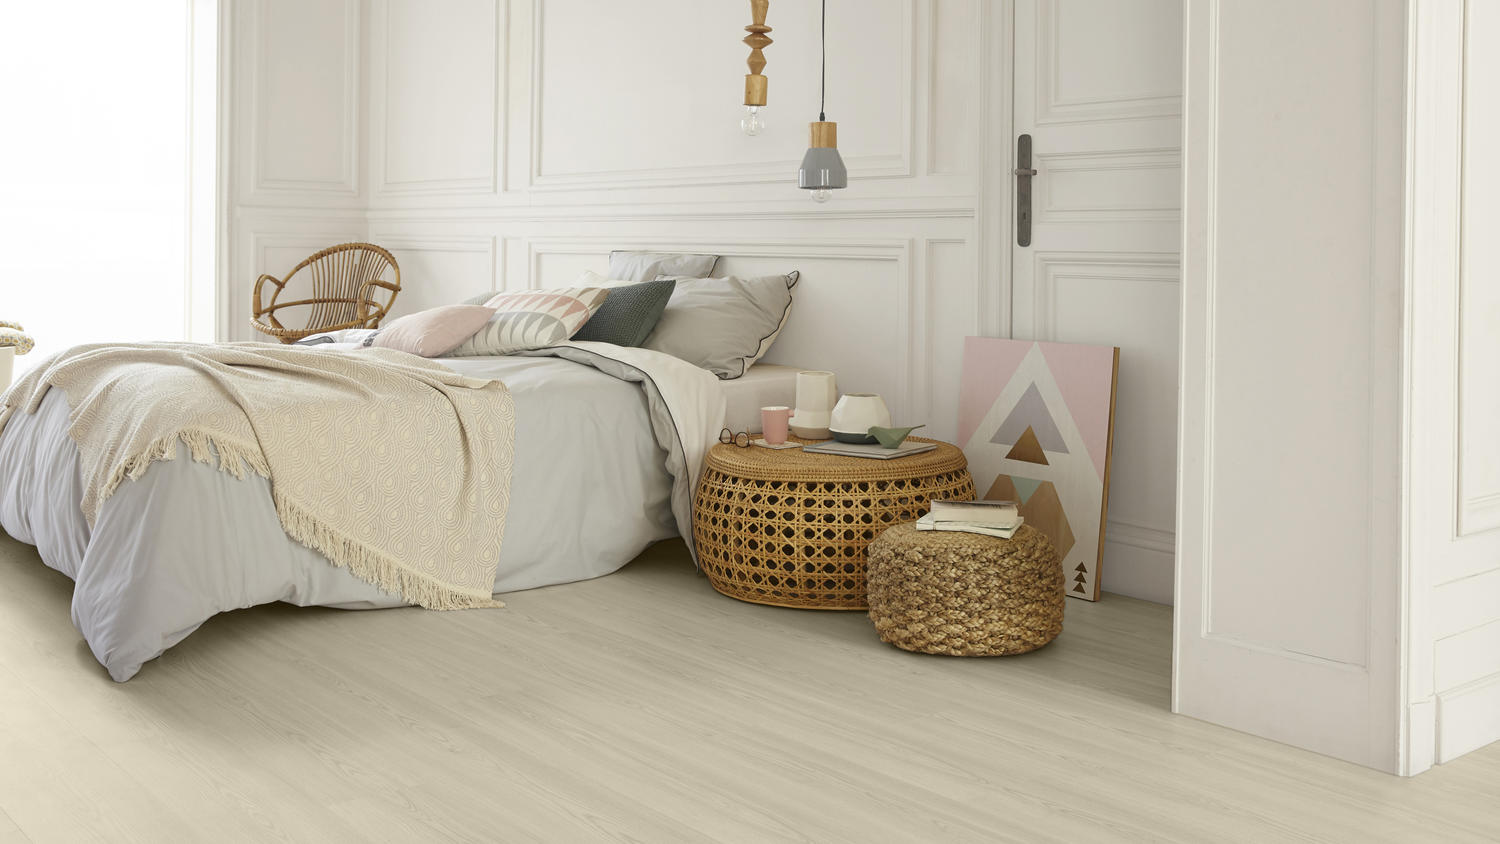 TARKETT LAMINATE FLOORING BENEFITS